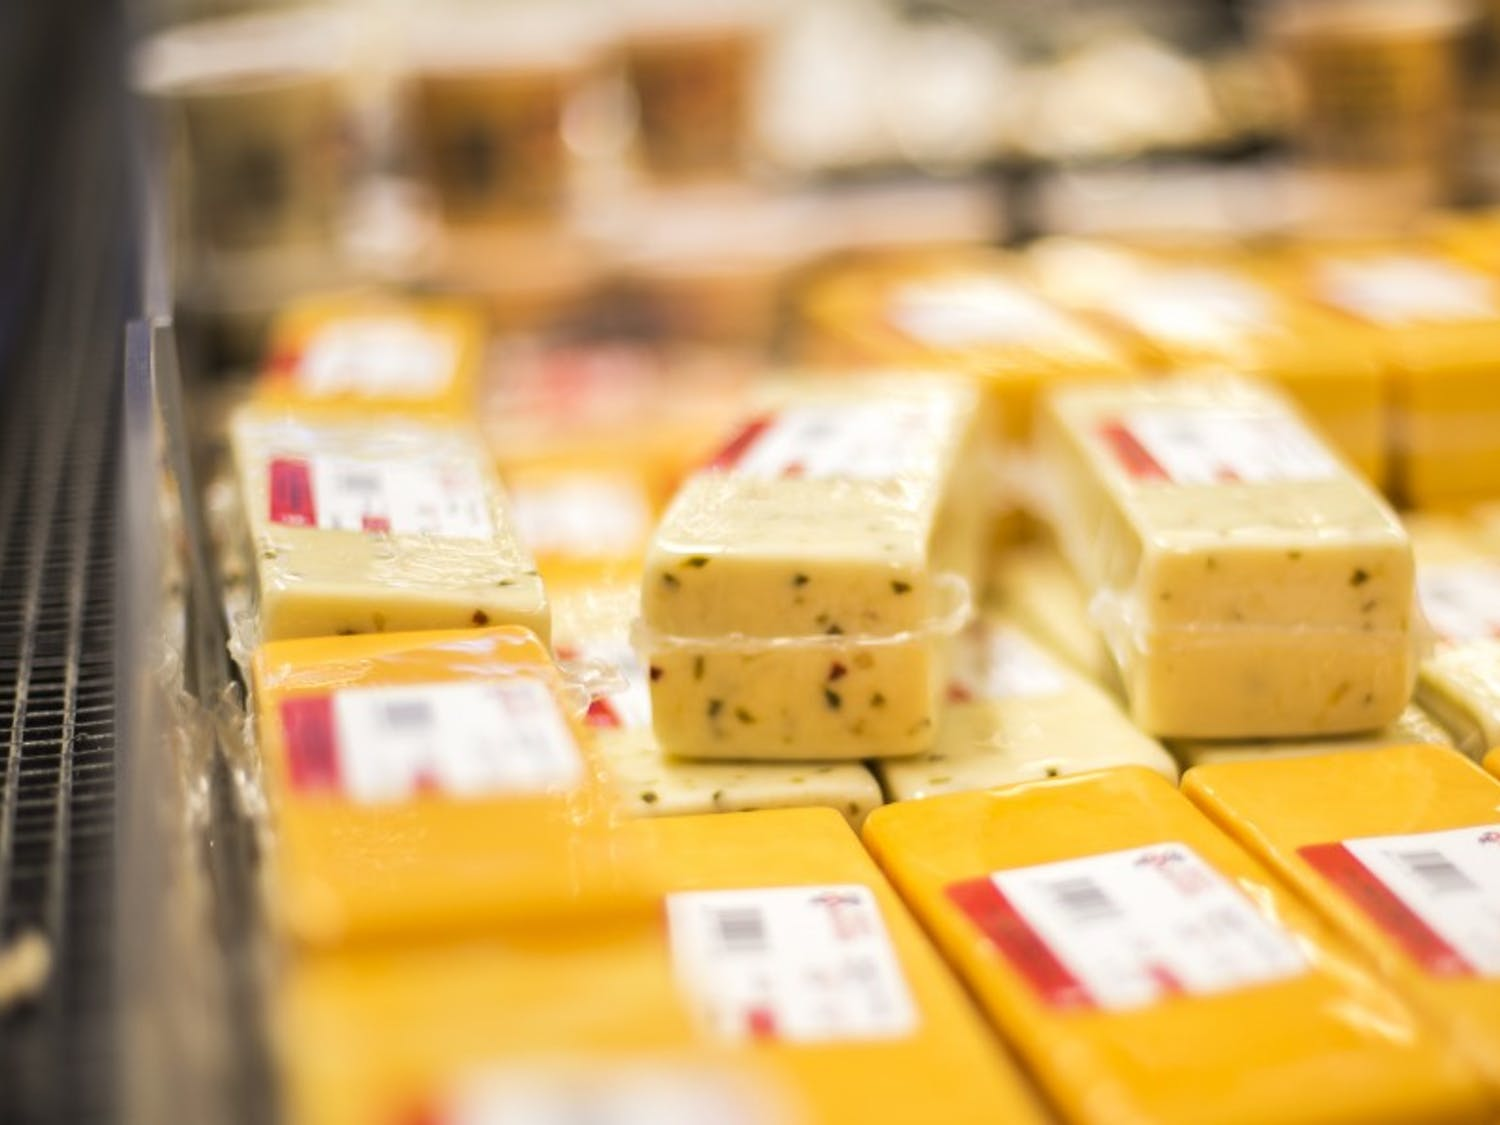 A Monroe-based cheese maker won best in show at the 2016 World Cheese Championship.